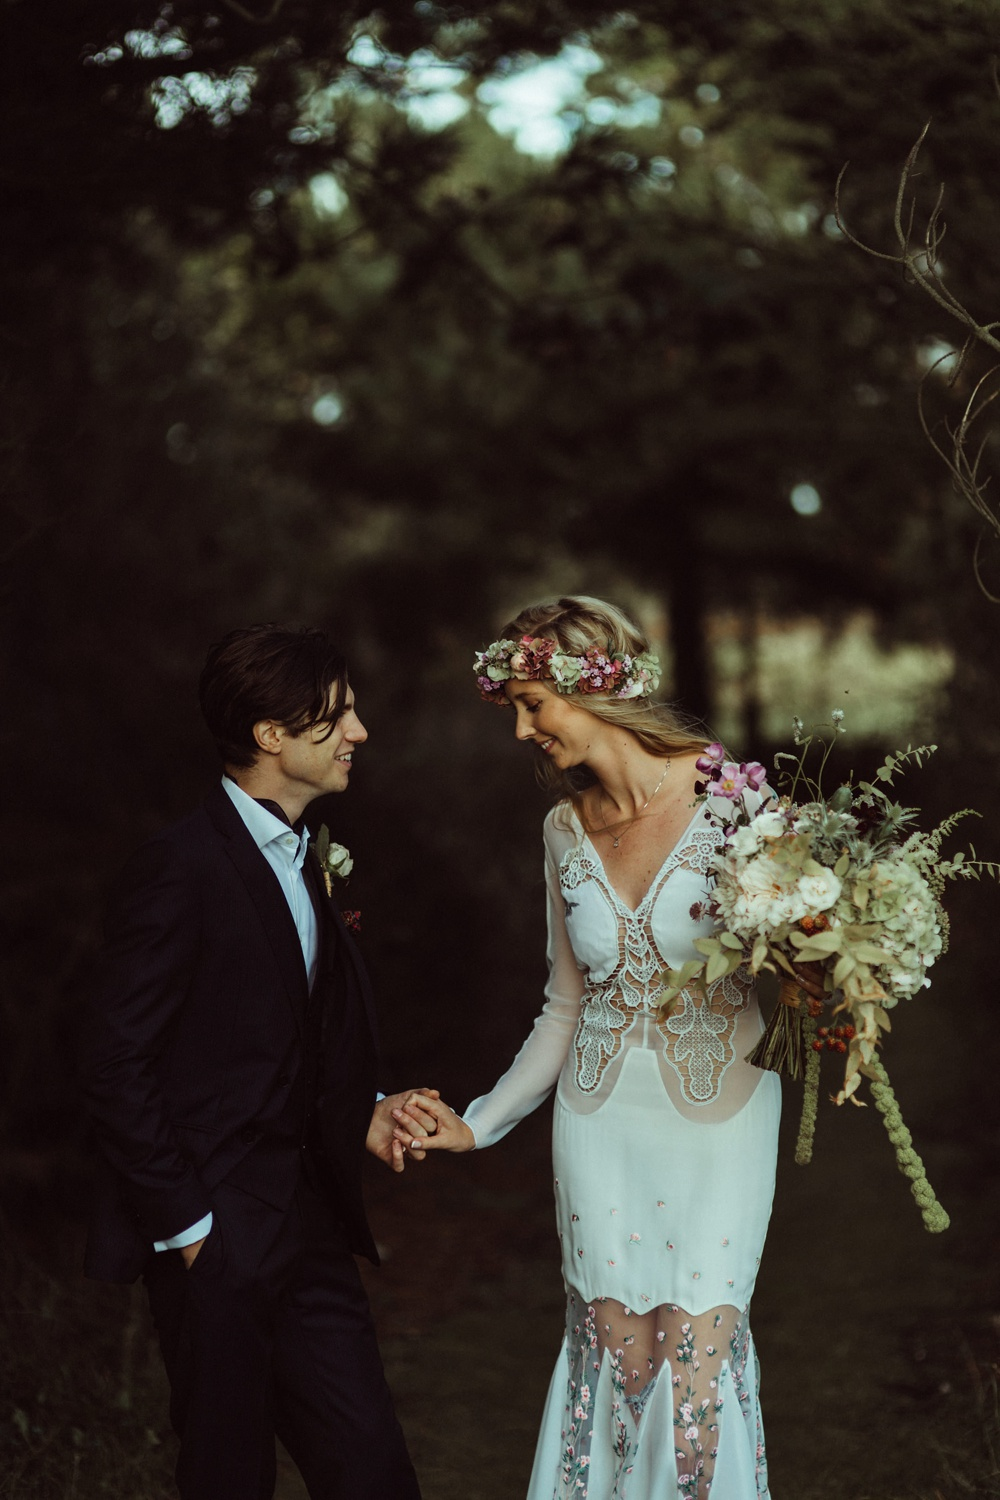 bride and groom photo shoot in New Forest, England